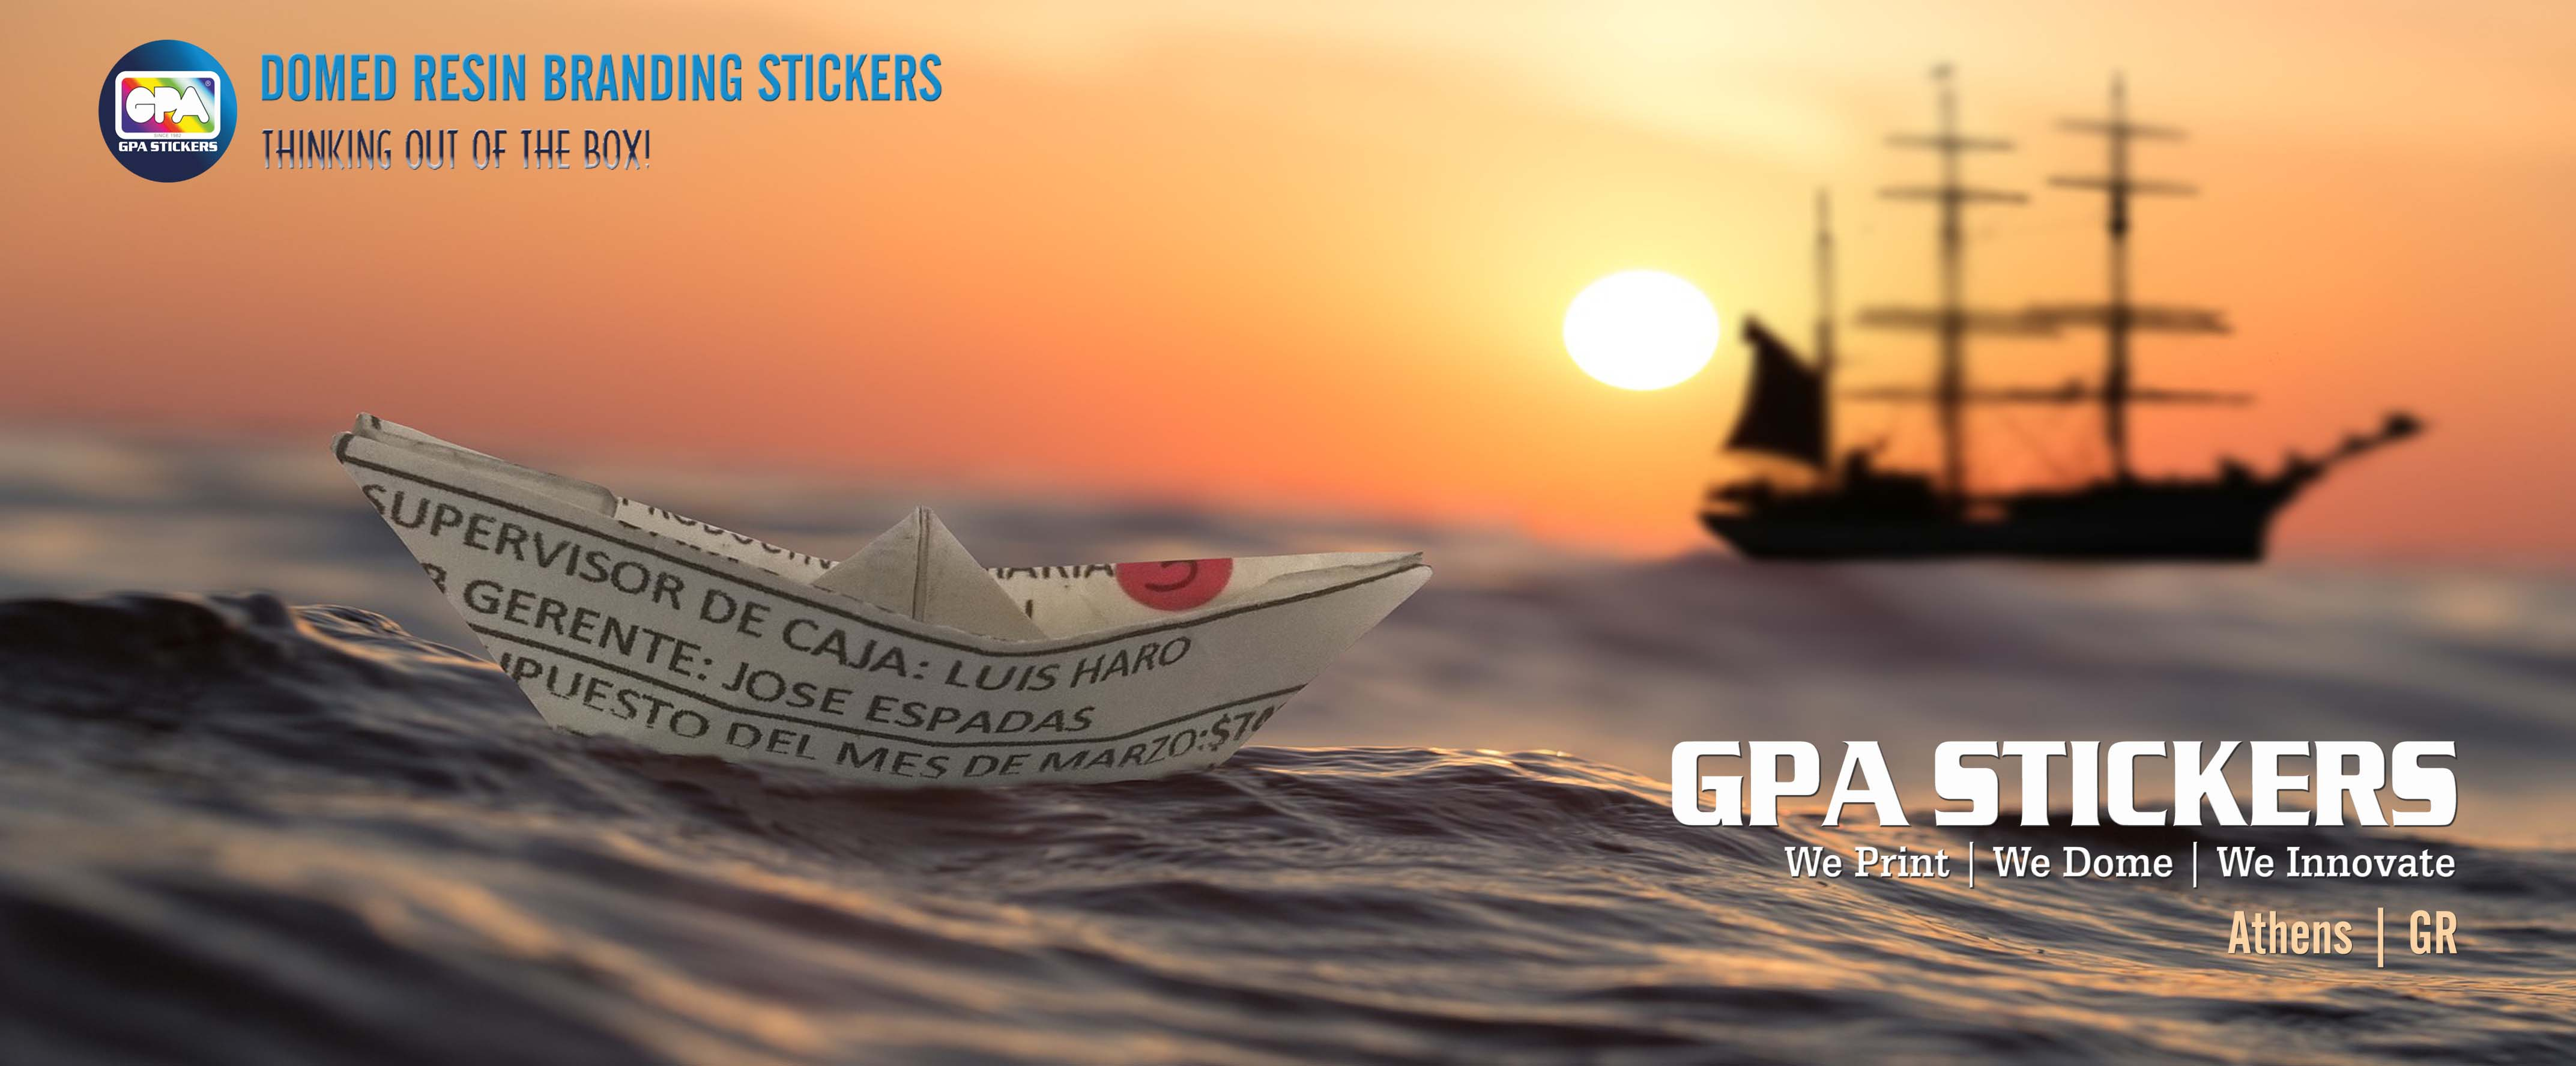 GPA-STICKERS-GR3